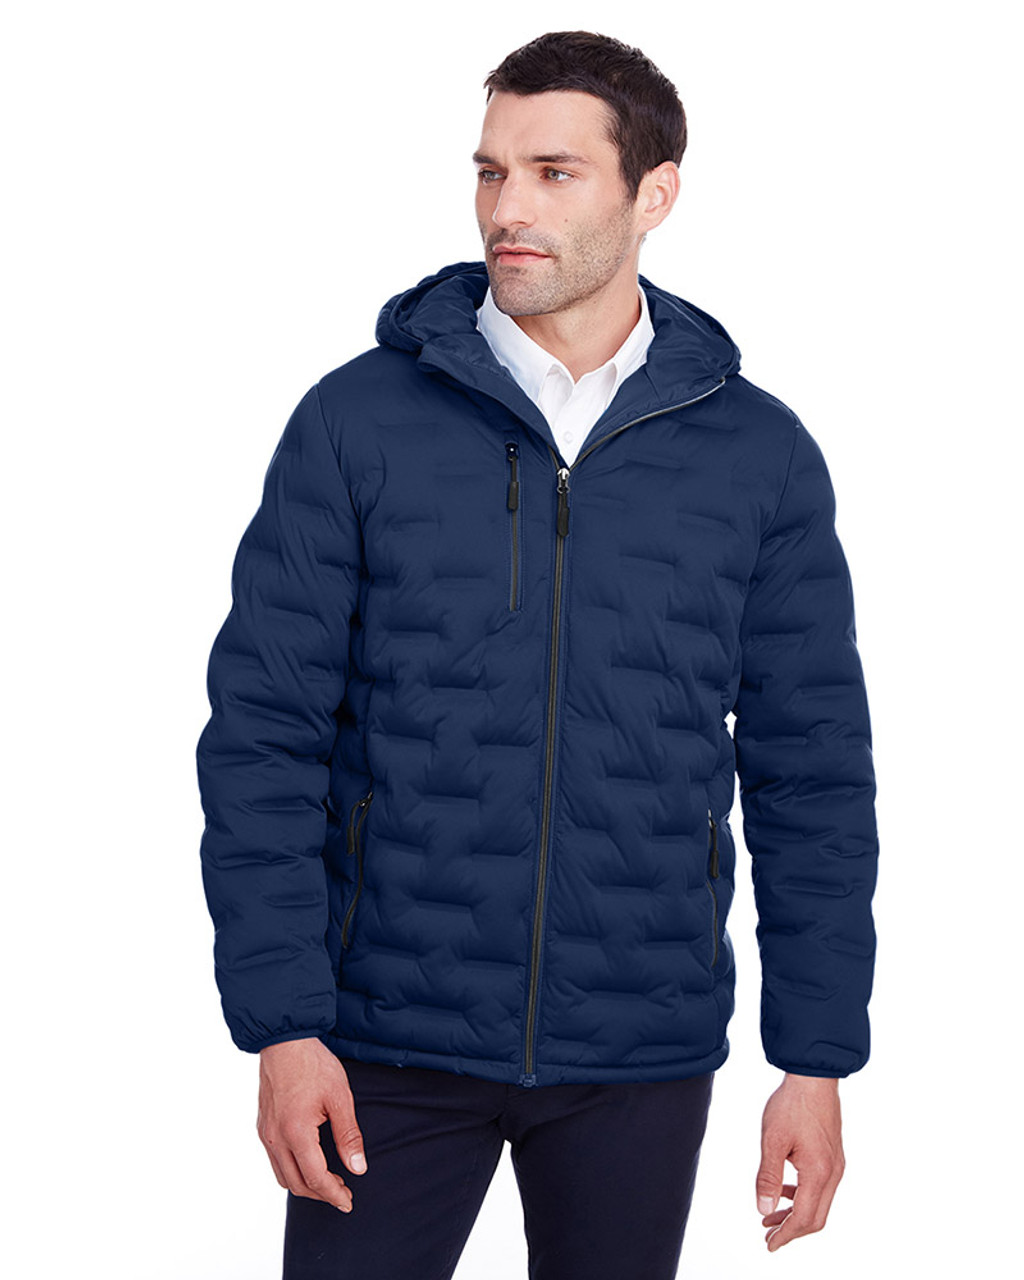 Classic Navy/Carbon - NE708 North End Men's Loft Puffer Jacket | Blankclothing.ca